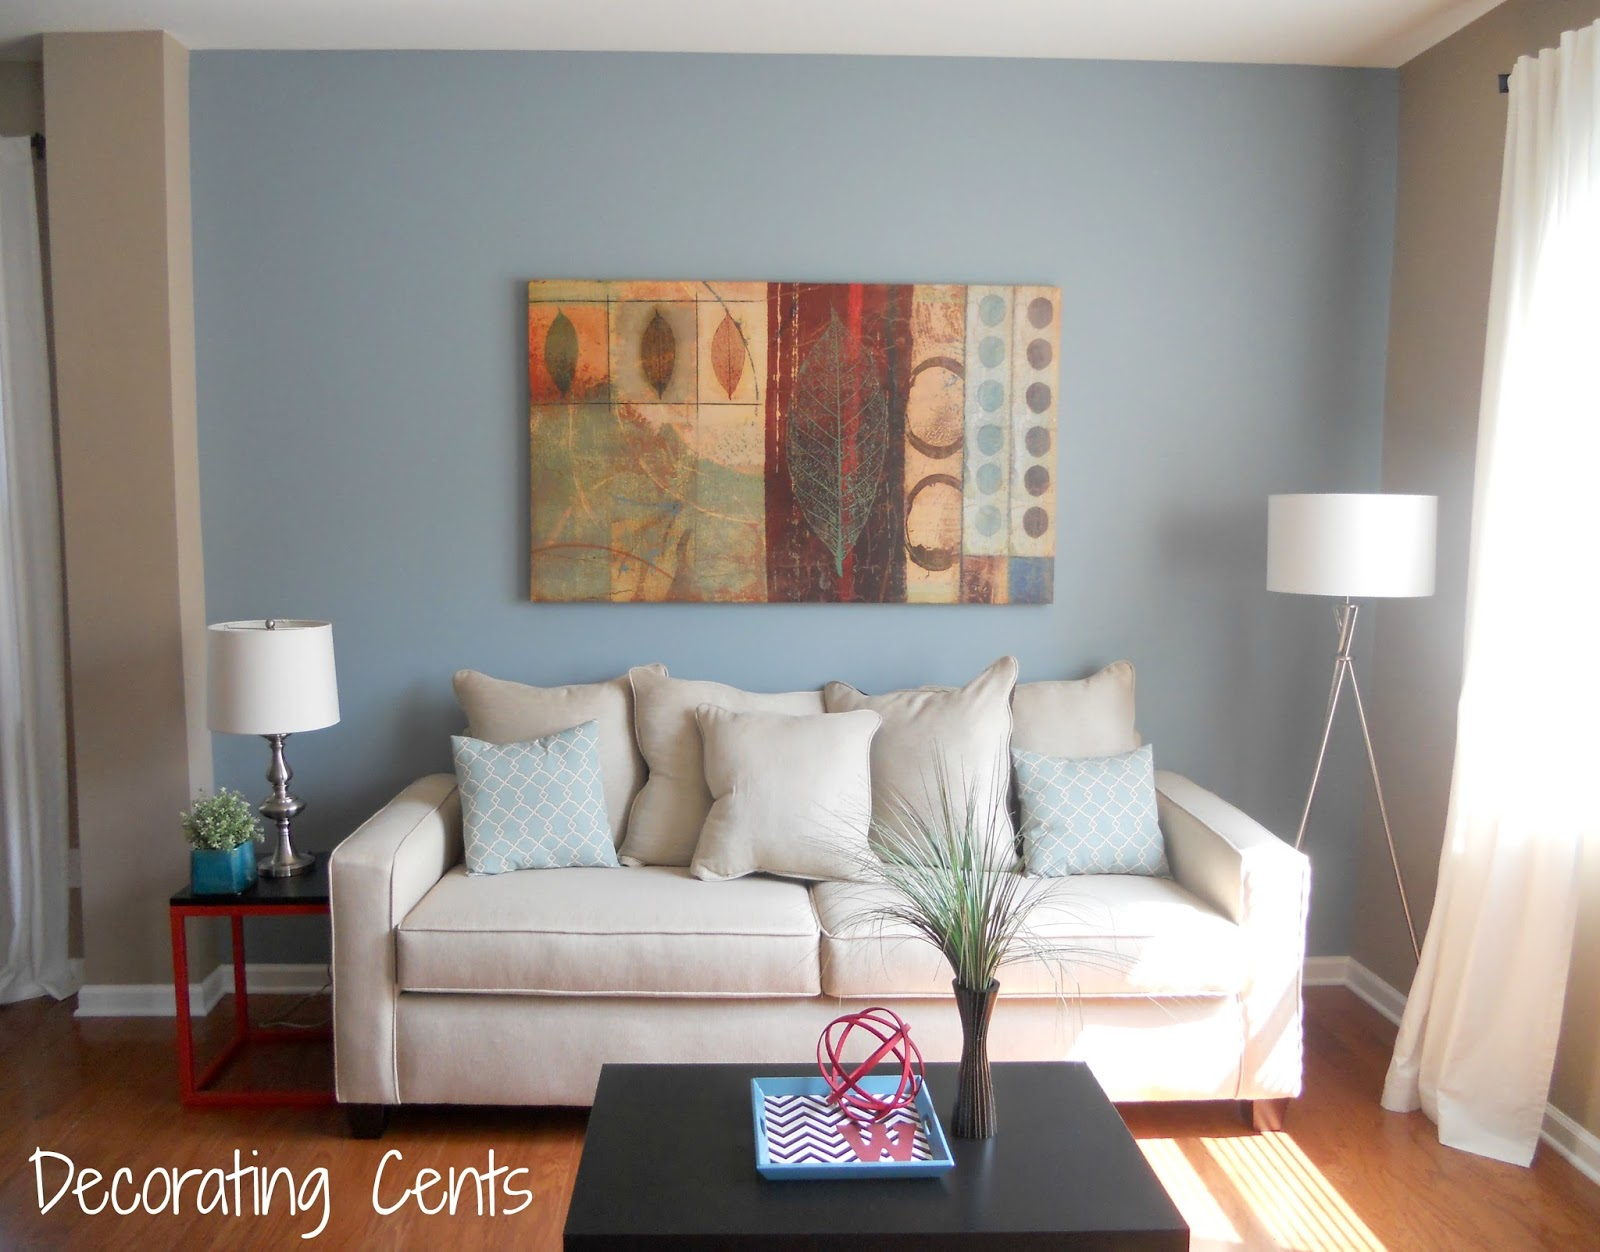 Decorating Cents Color Change With Room Colors That Make You Happy